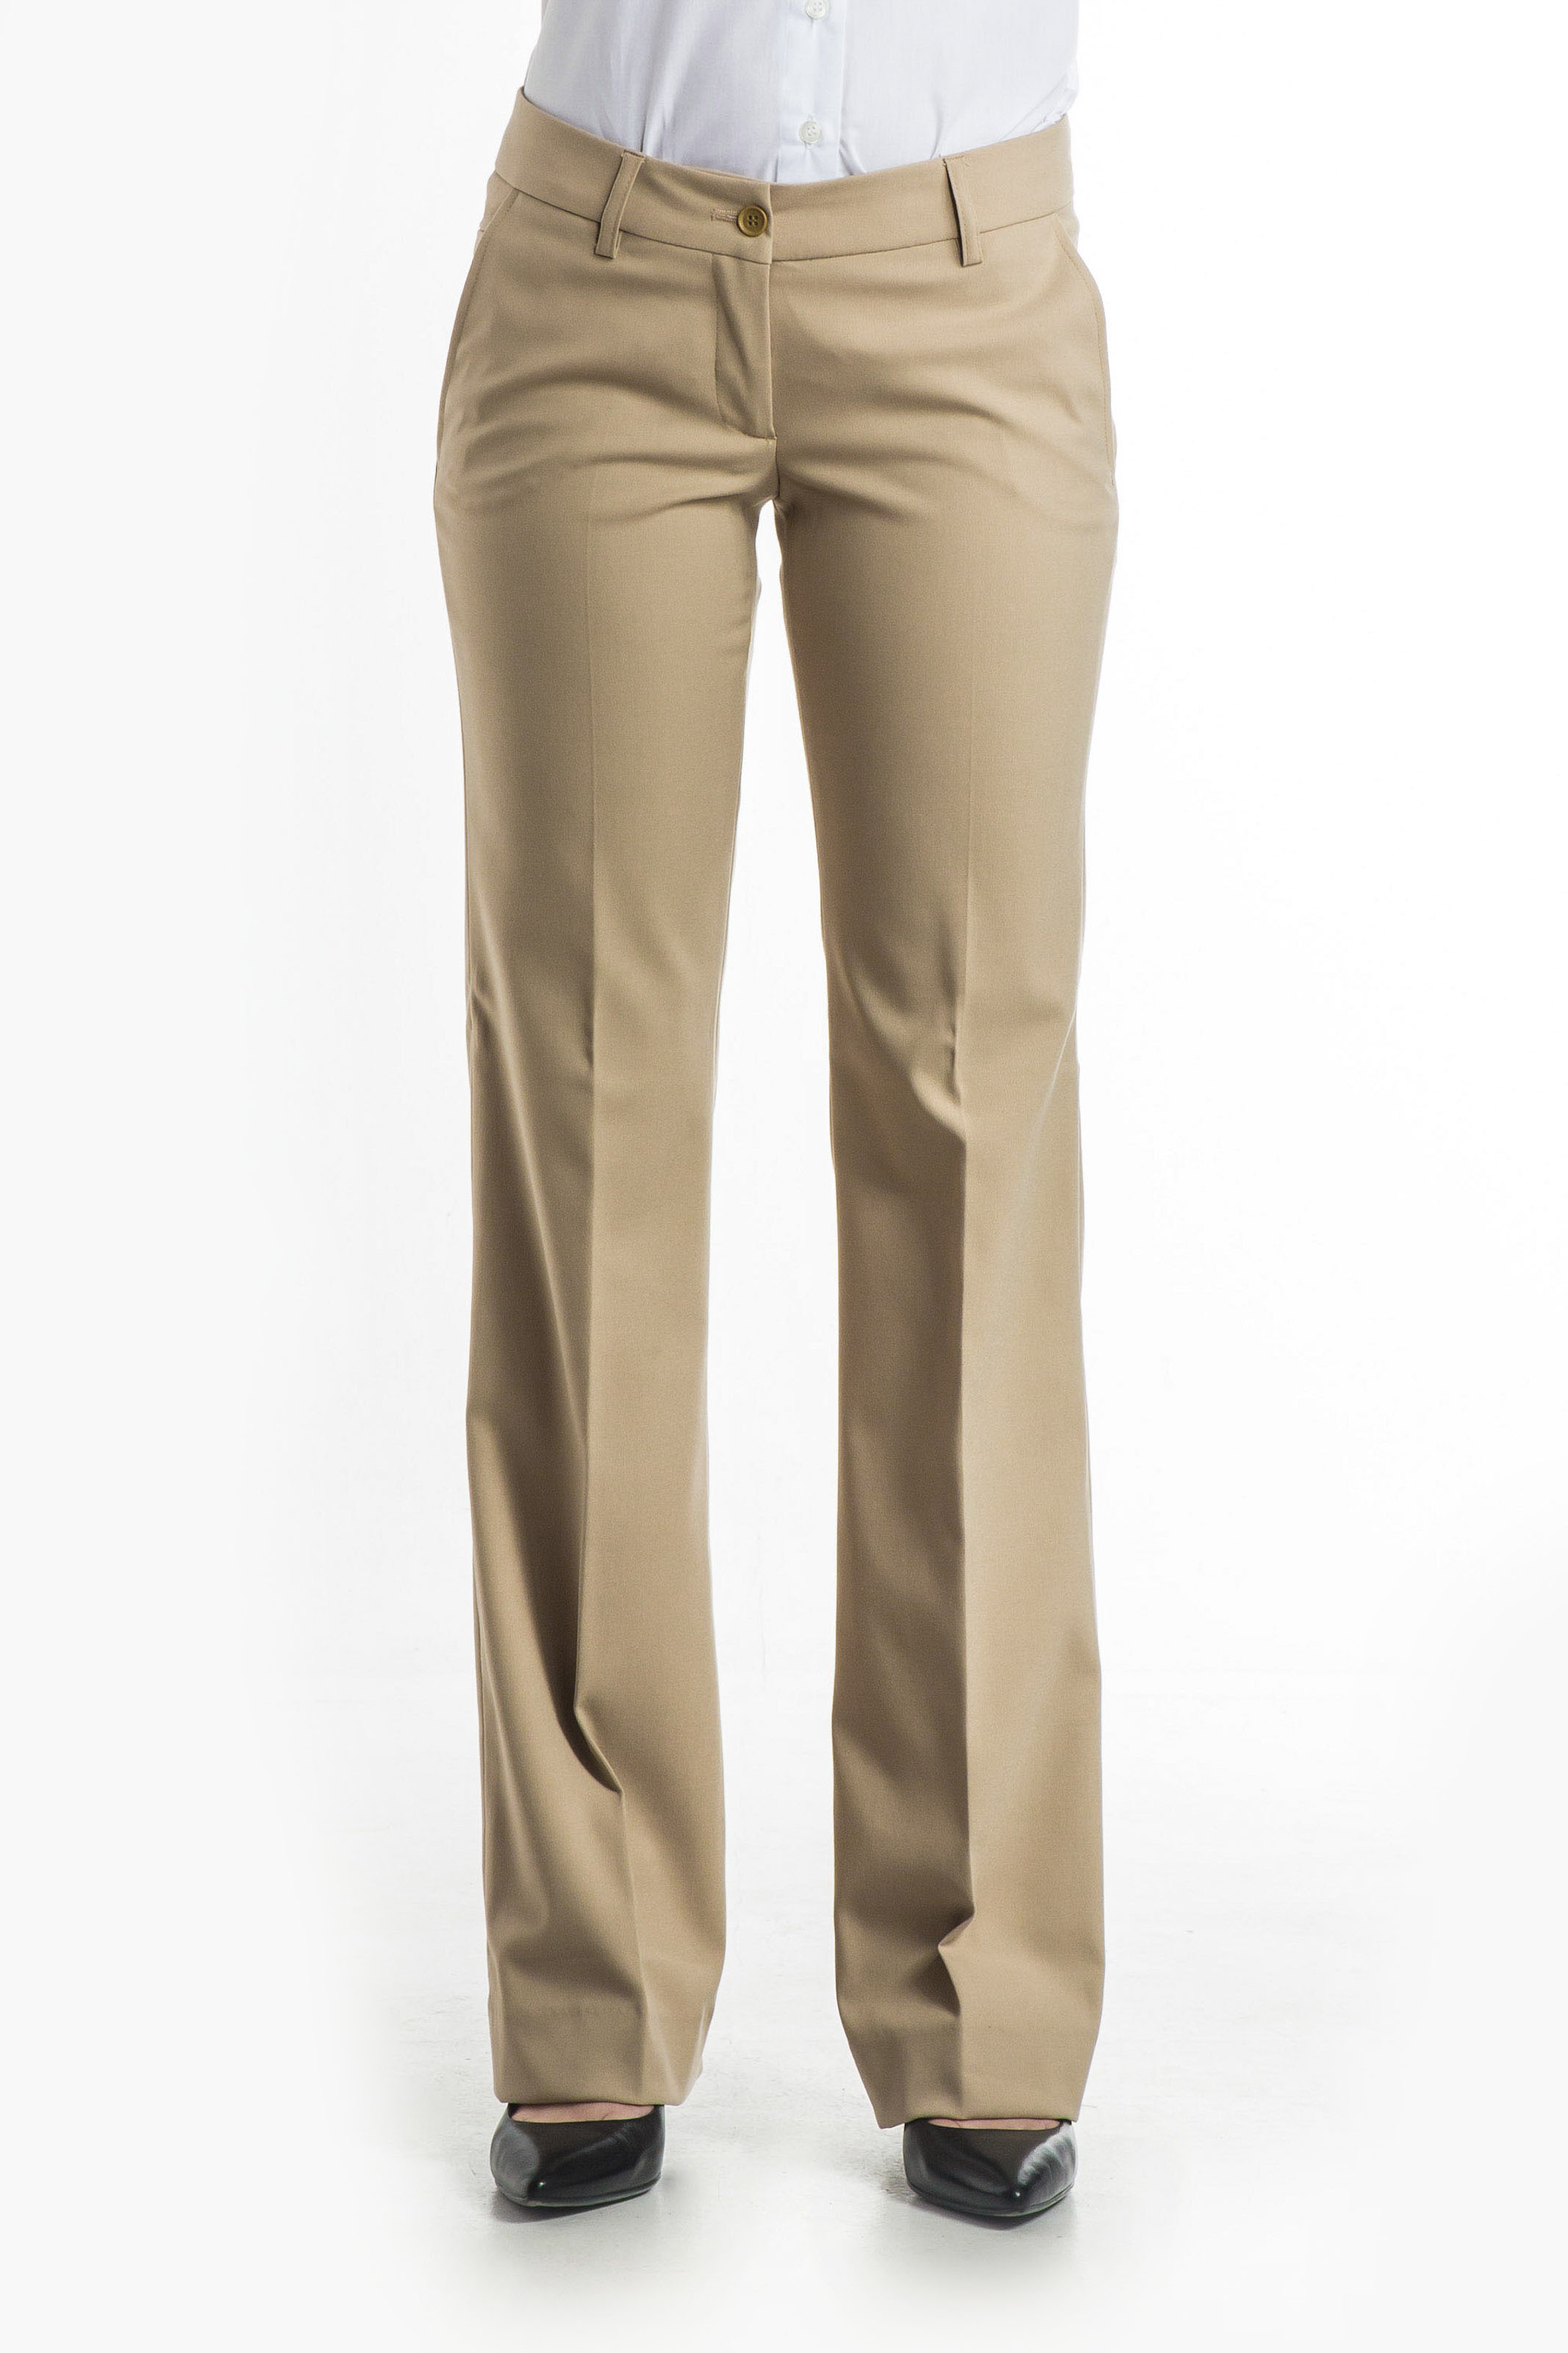 Aris Uniforms-FT11-City Women's Trouser